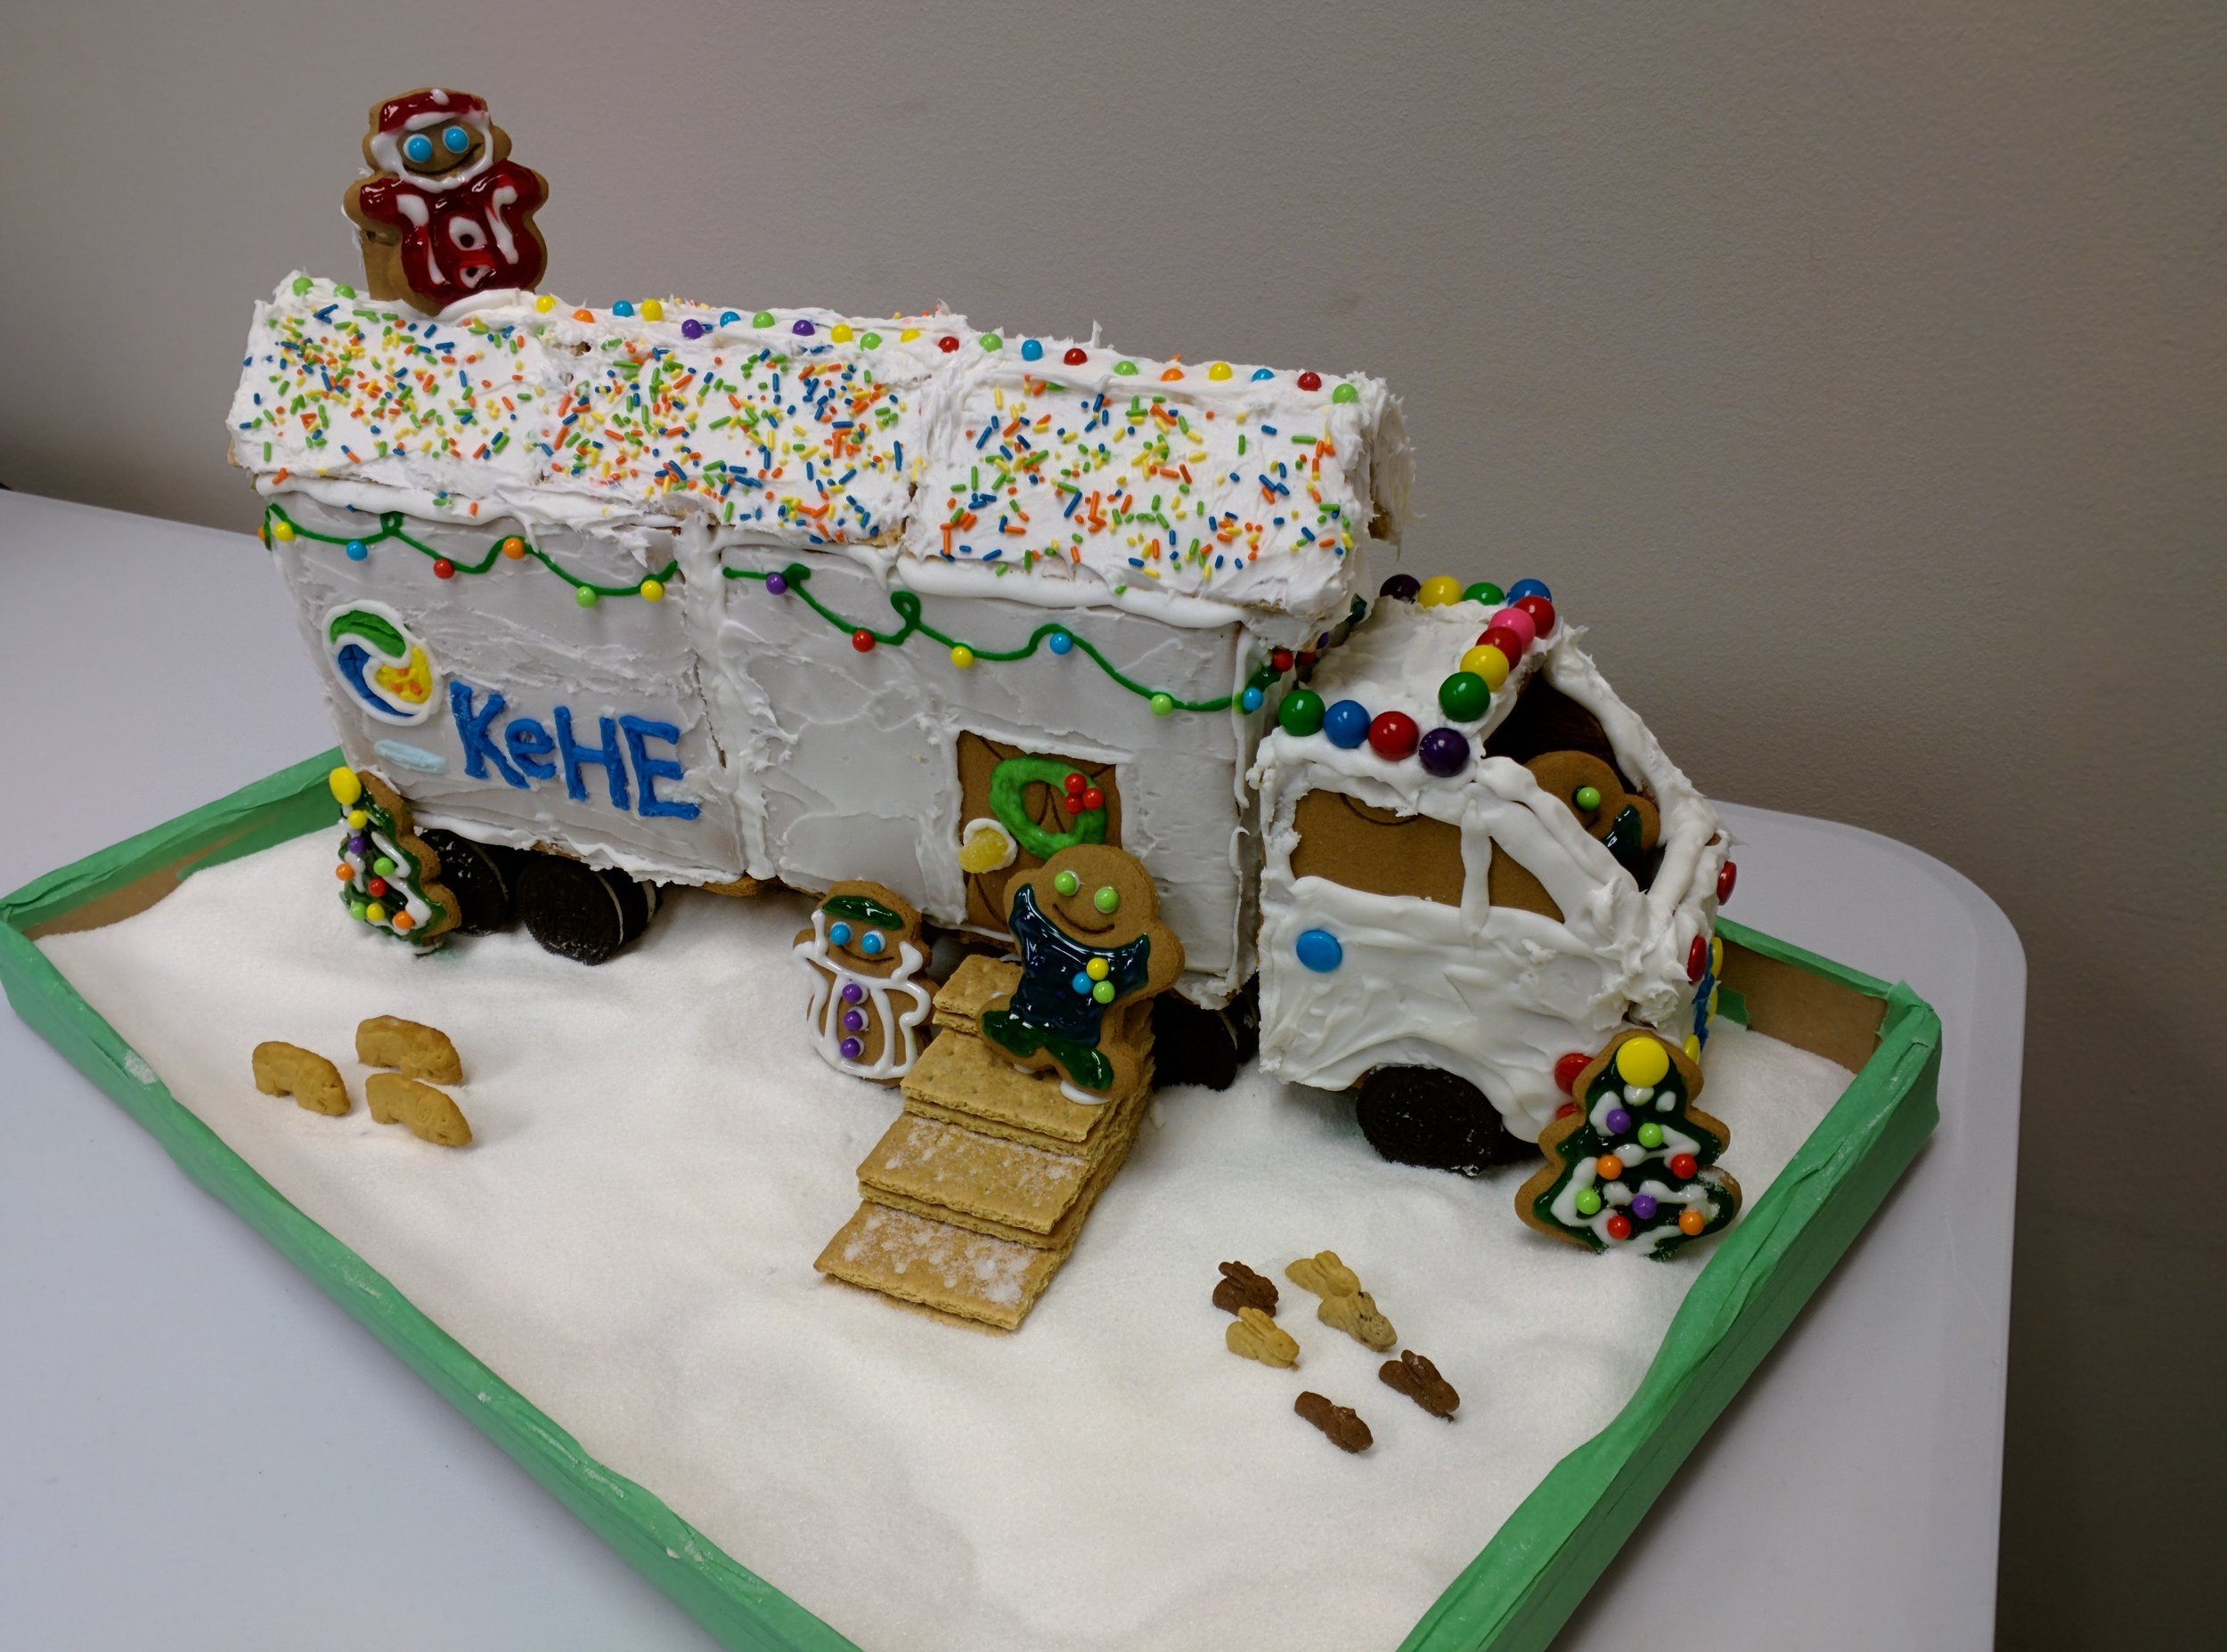 Our entry for KeHE's holiday gingerbread house contest. We made a KeHE truck trailer home and won!